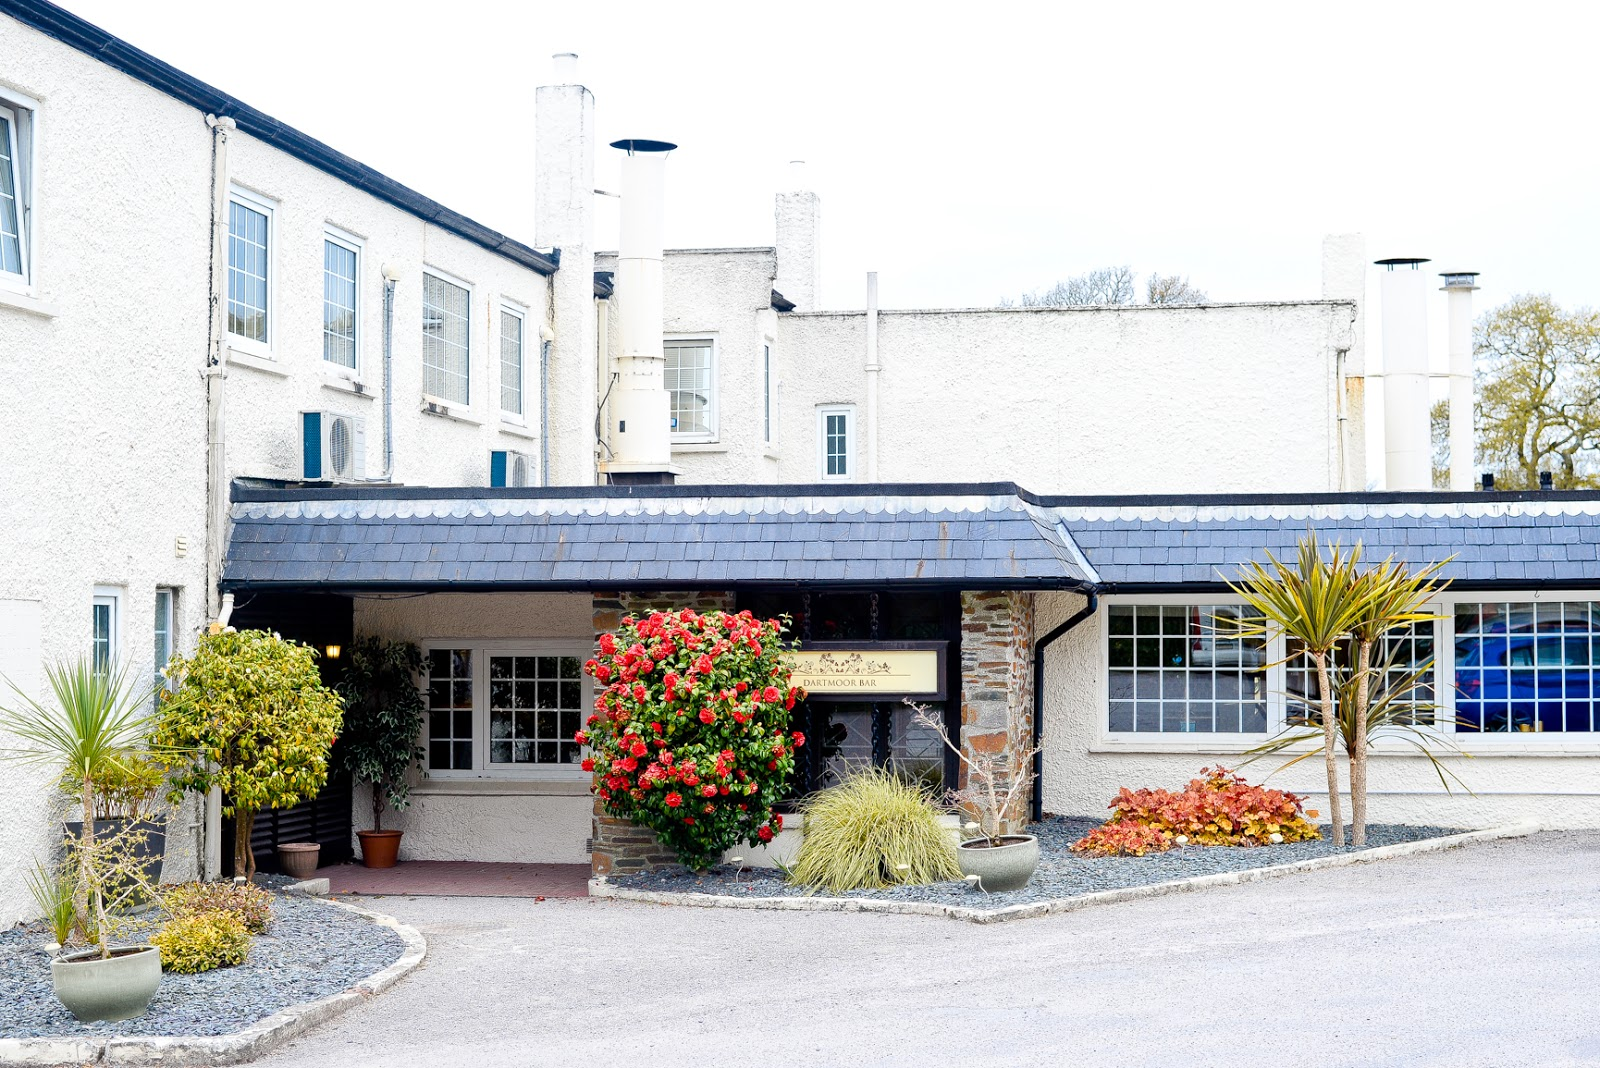 The moorland garden hotel, family uk breaks, devon breaks, hotels in devon